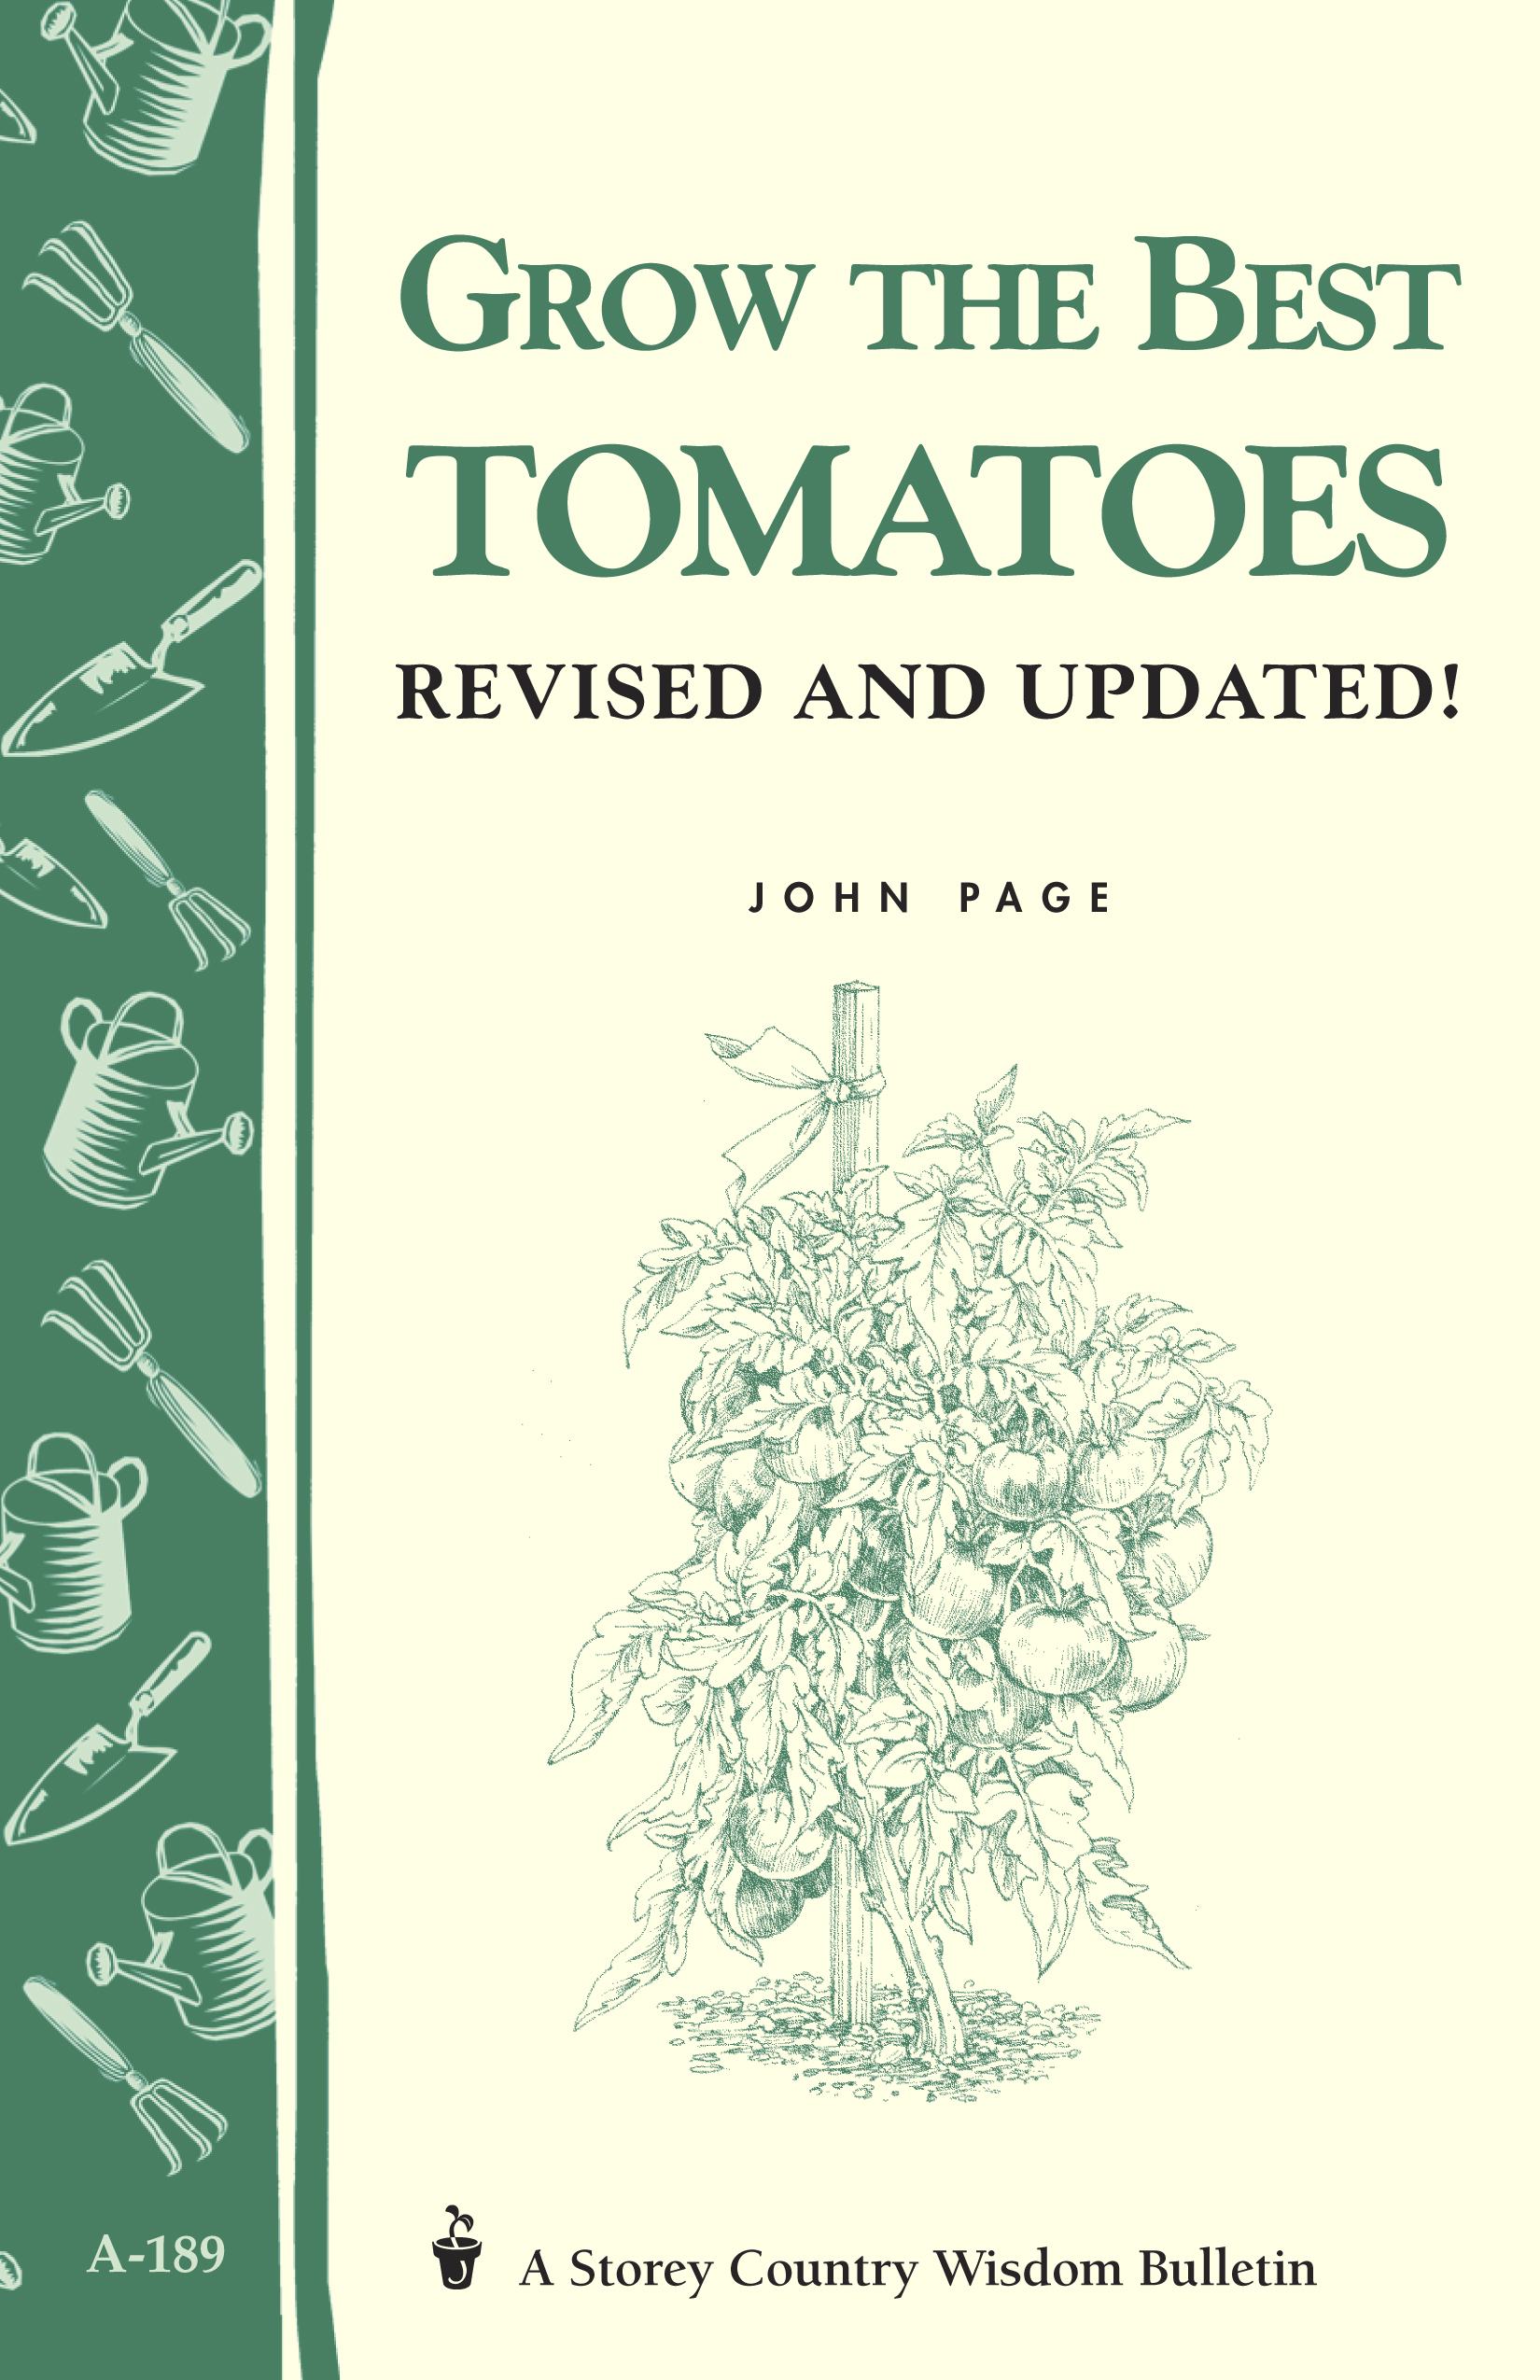 Grow the Best Tomatoes Storey's Country Wisdom Bulletin A-189 - John Page